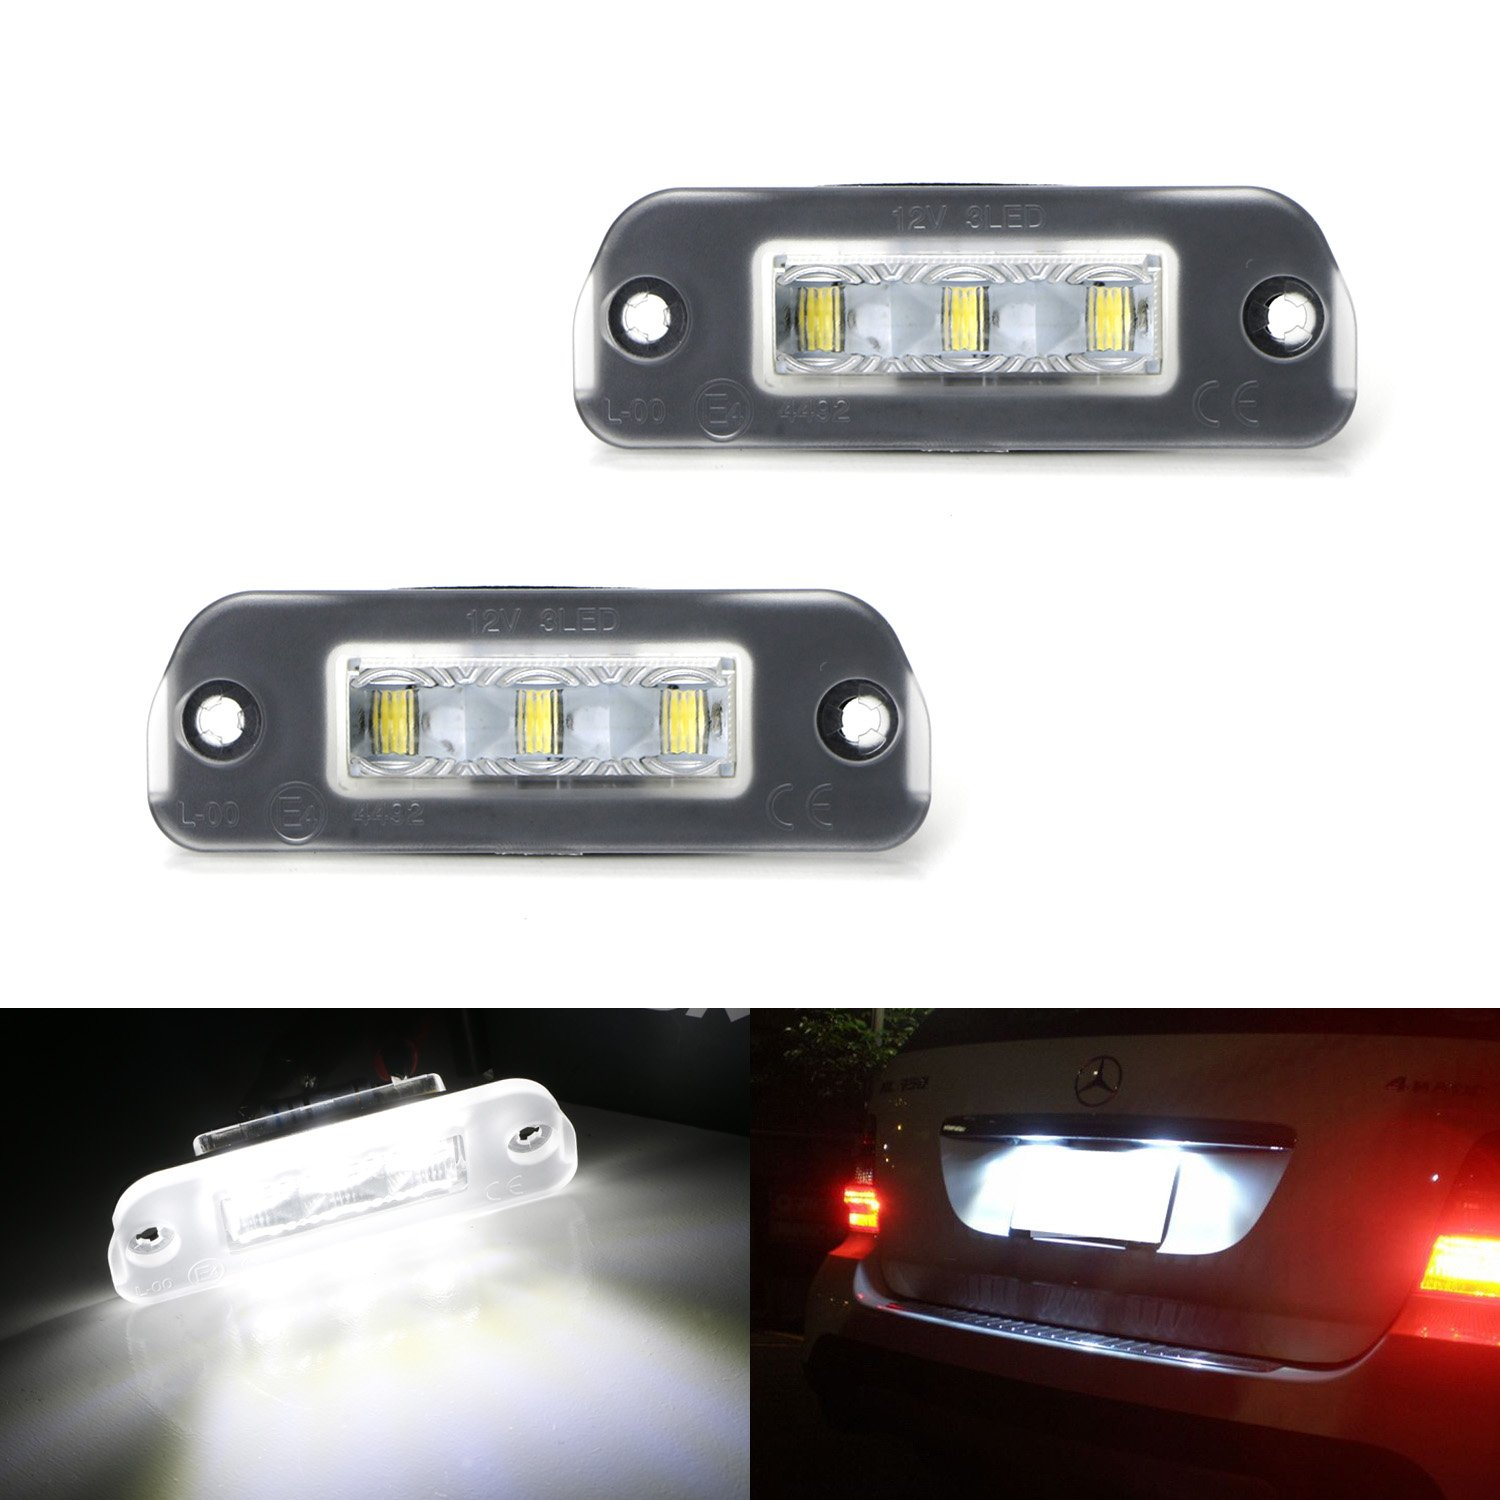 iJDMTOY Xenon White CAN-bus 3-LED License Plate Lights Assy For Mercedes-Benz ML M GL R Class Diesel Version (W164 X164 W251)